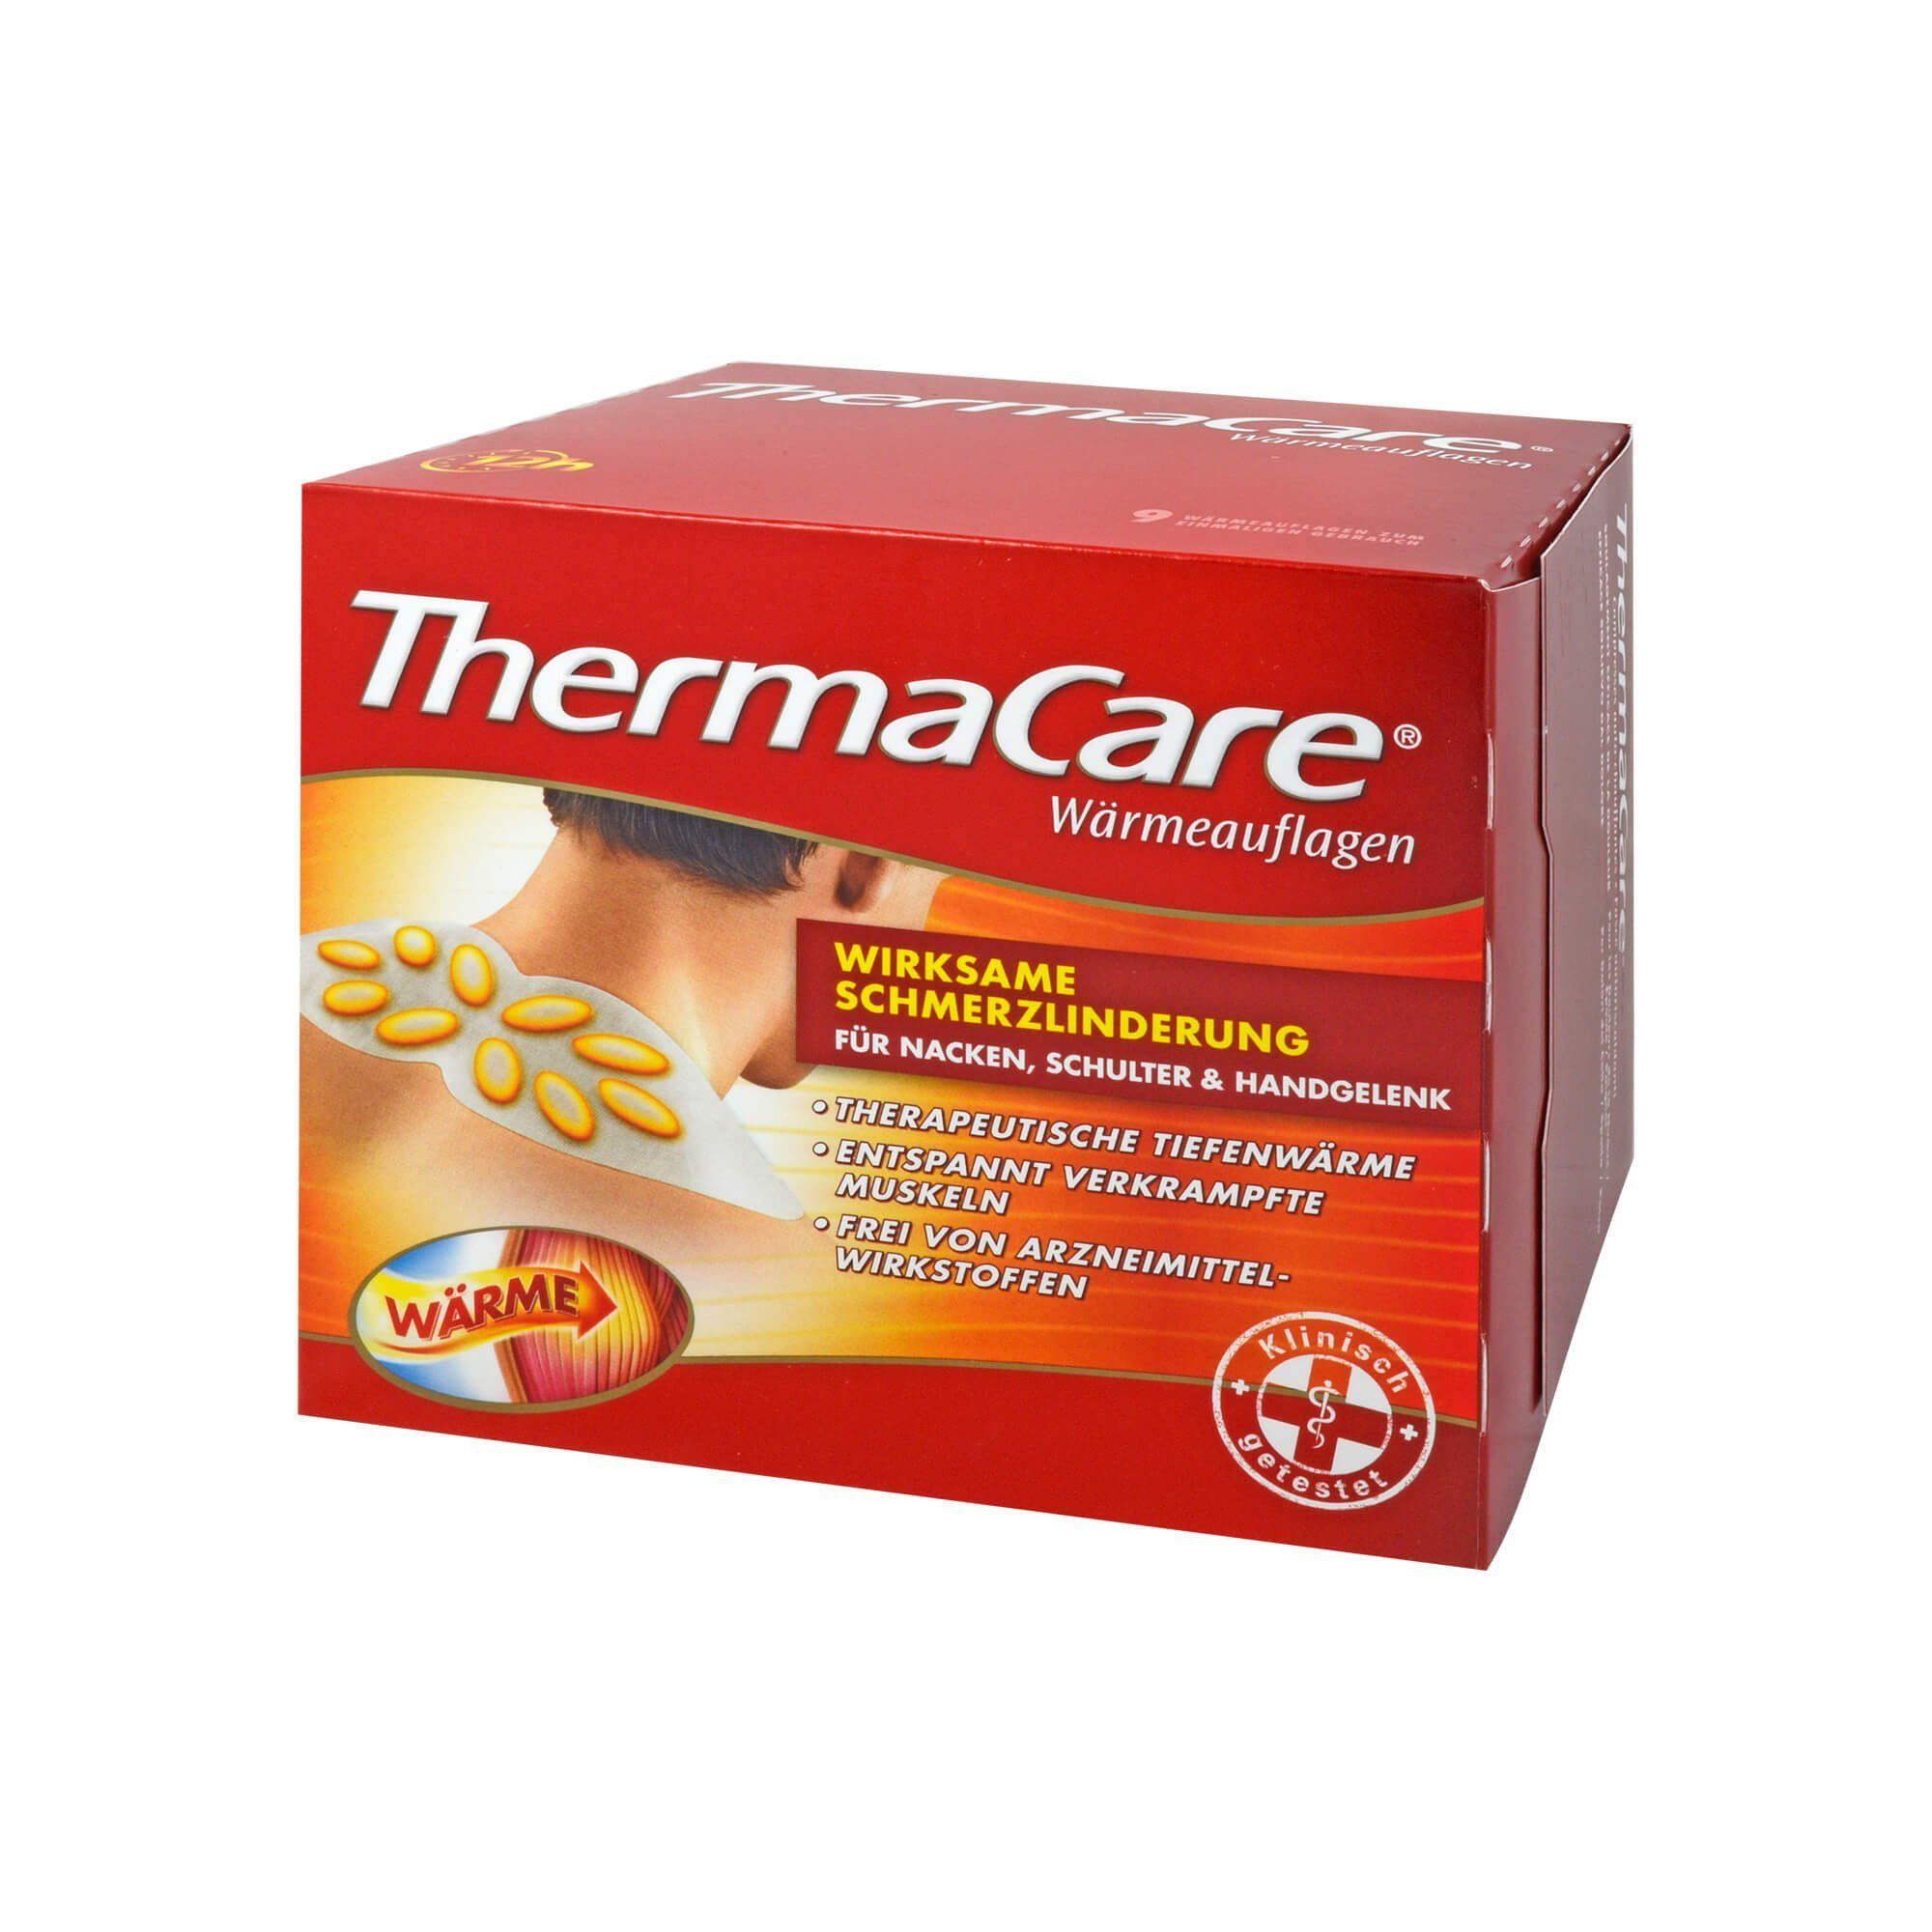 Thermacare ThermaCare Wärmeauflage , 9 St